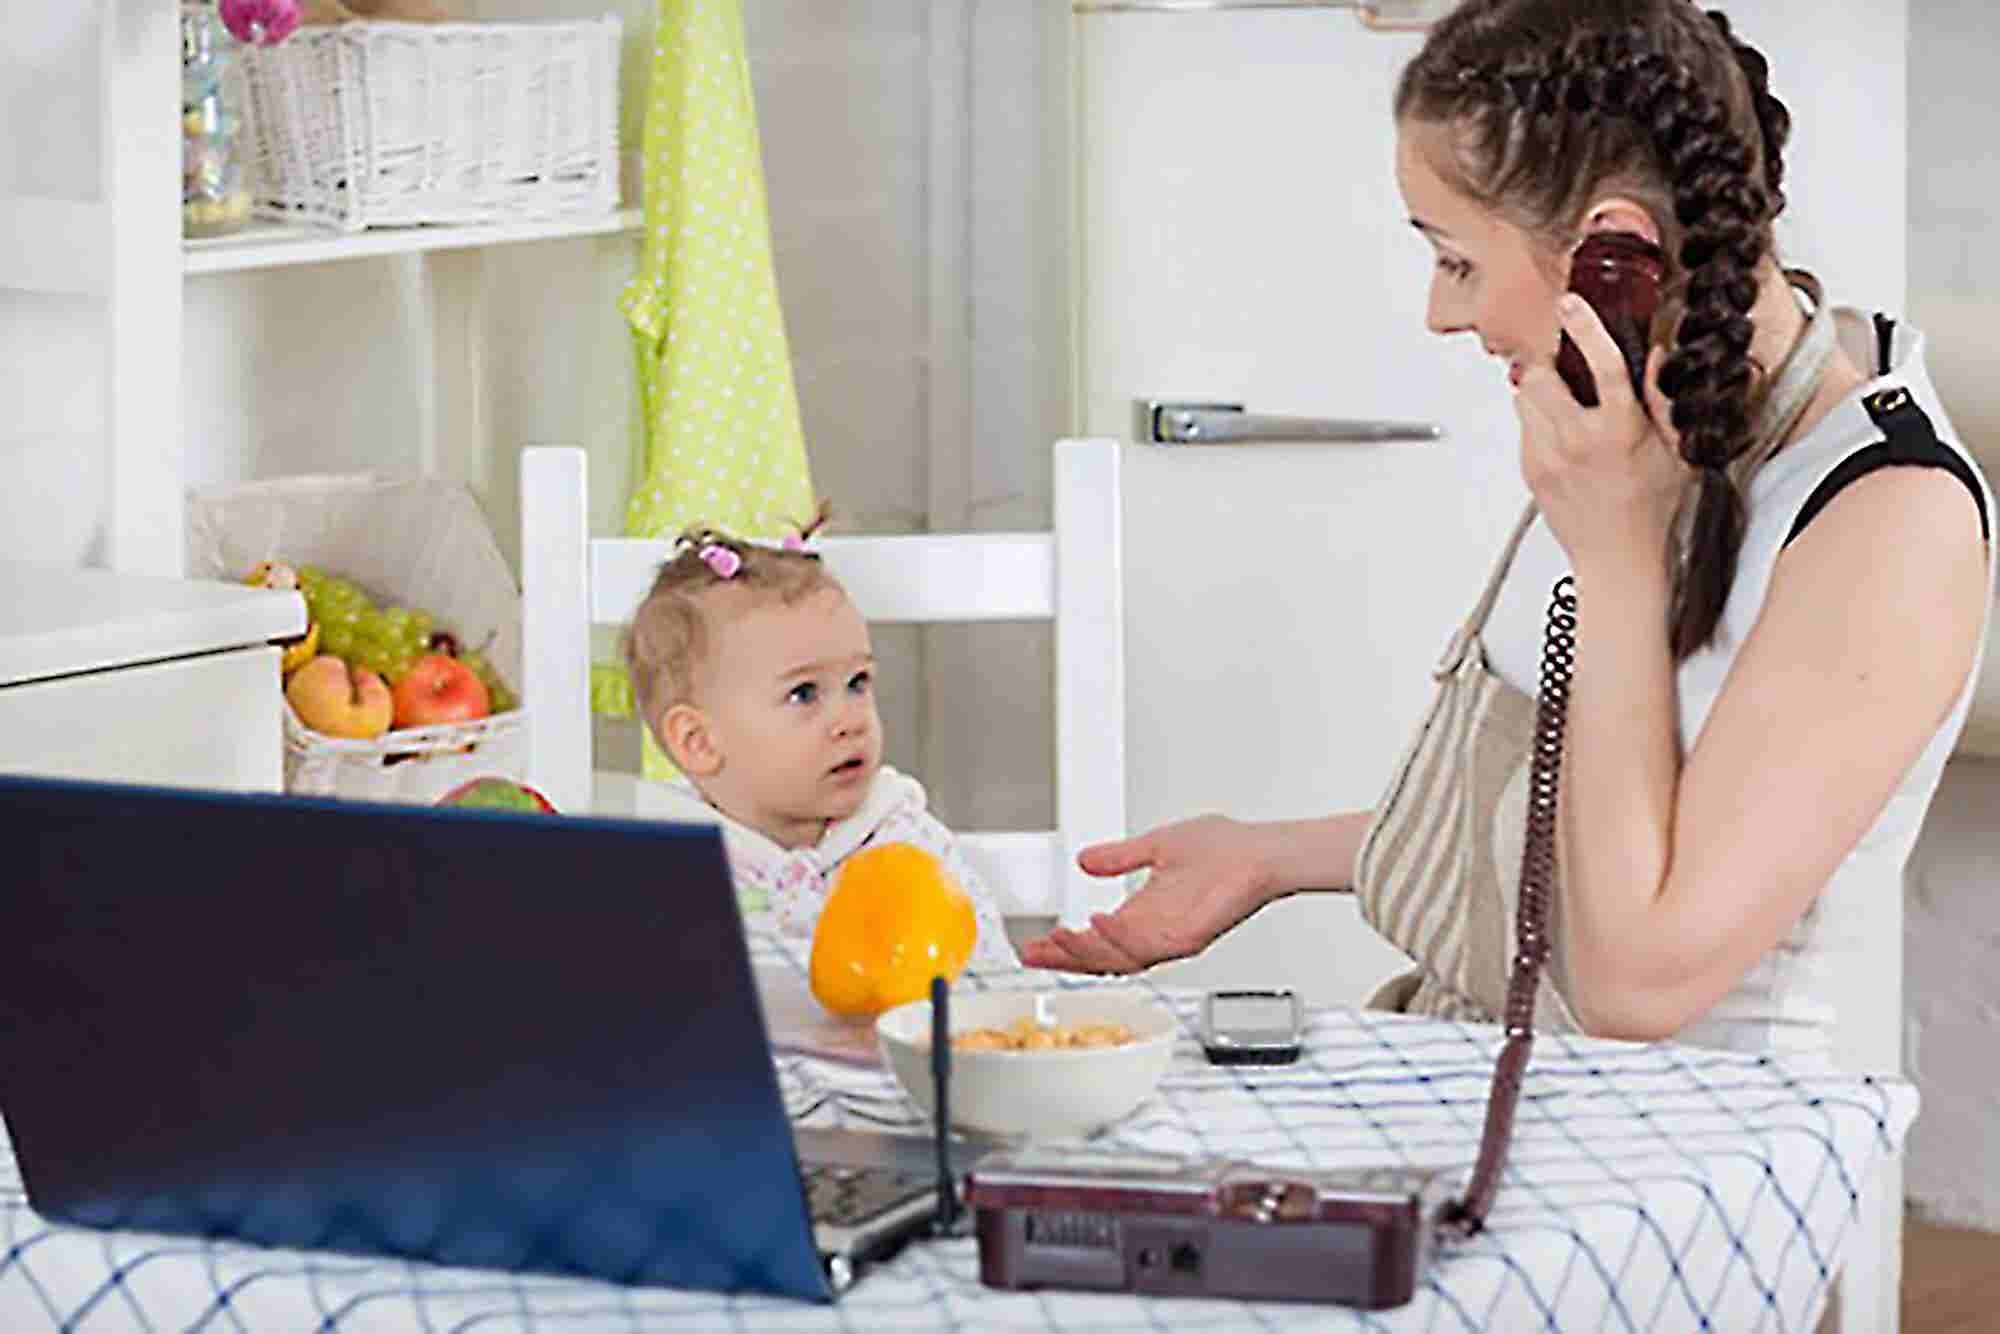 Nurturing Your 'Baby:' Starting a Family While Running a Startup